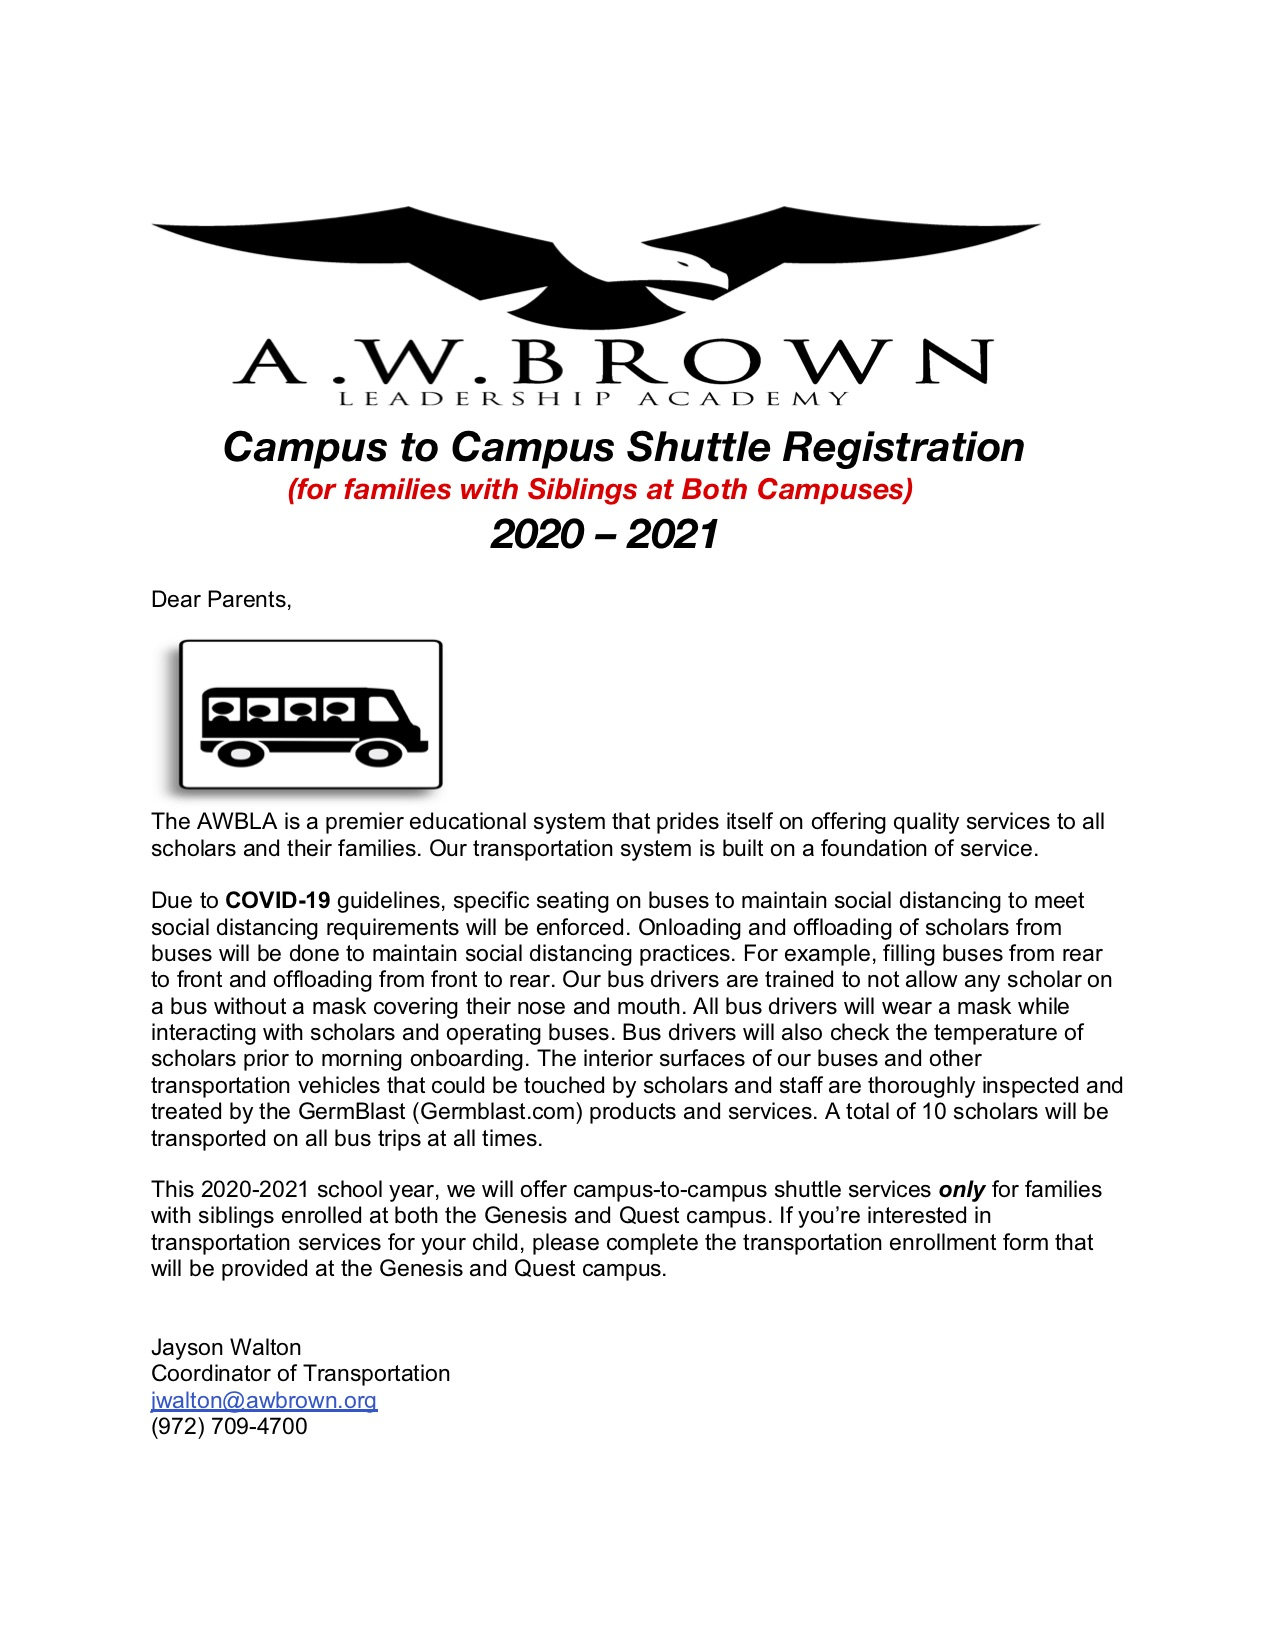 Campus to Campus Shuttle Information